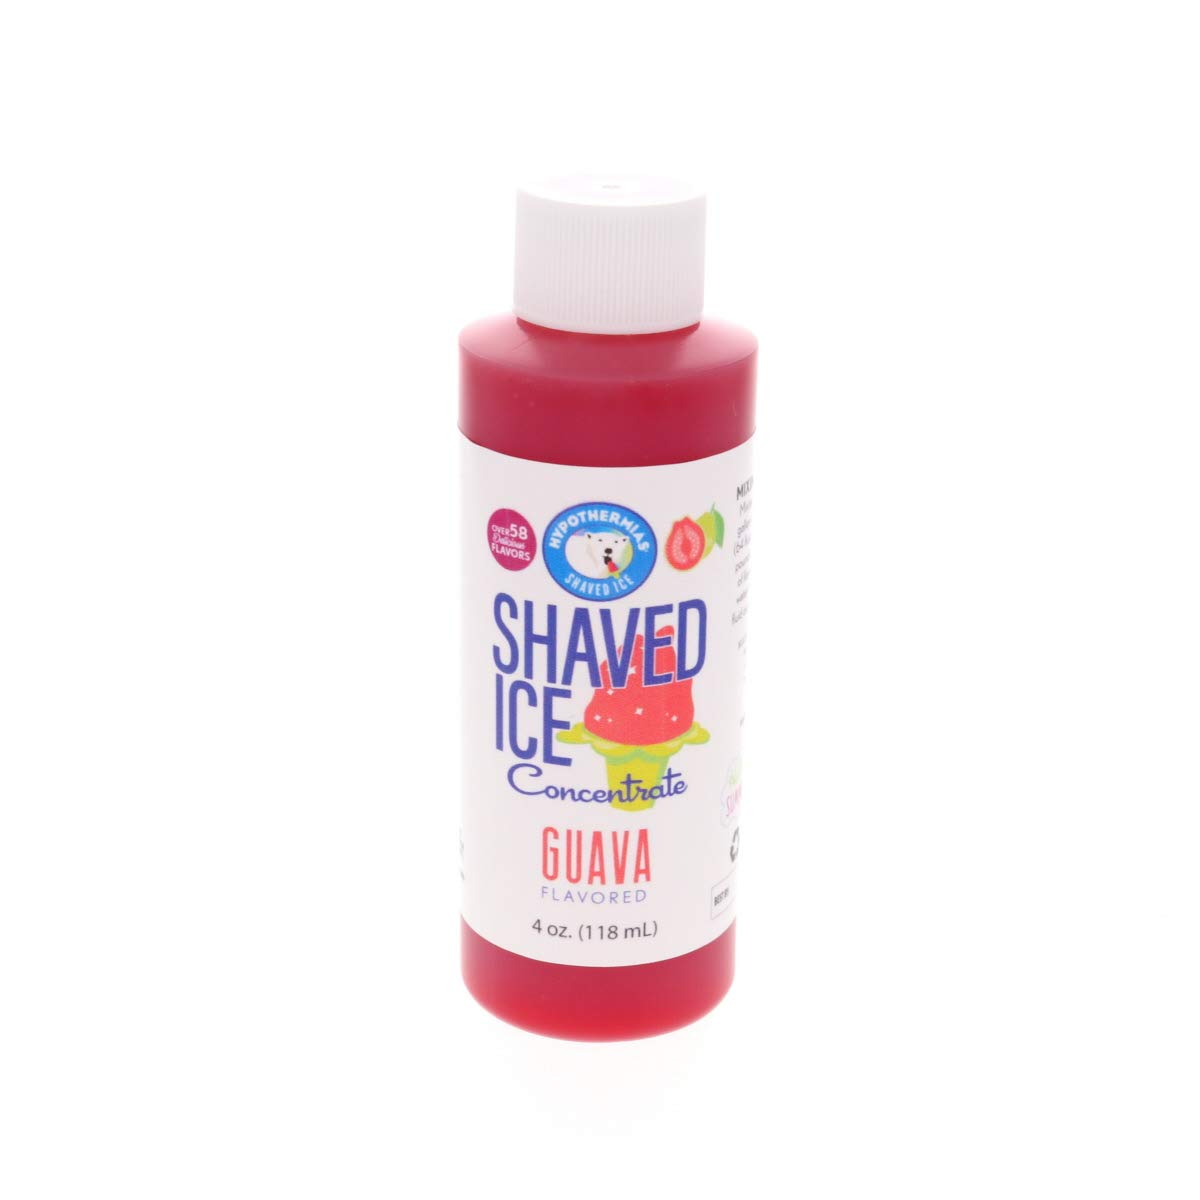 Ranking New product! New type TOP4 Guava Shaved Ice and Snow Concentrate Unsweetened Cone Flavor 4